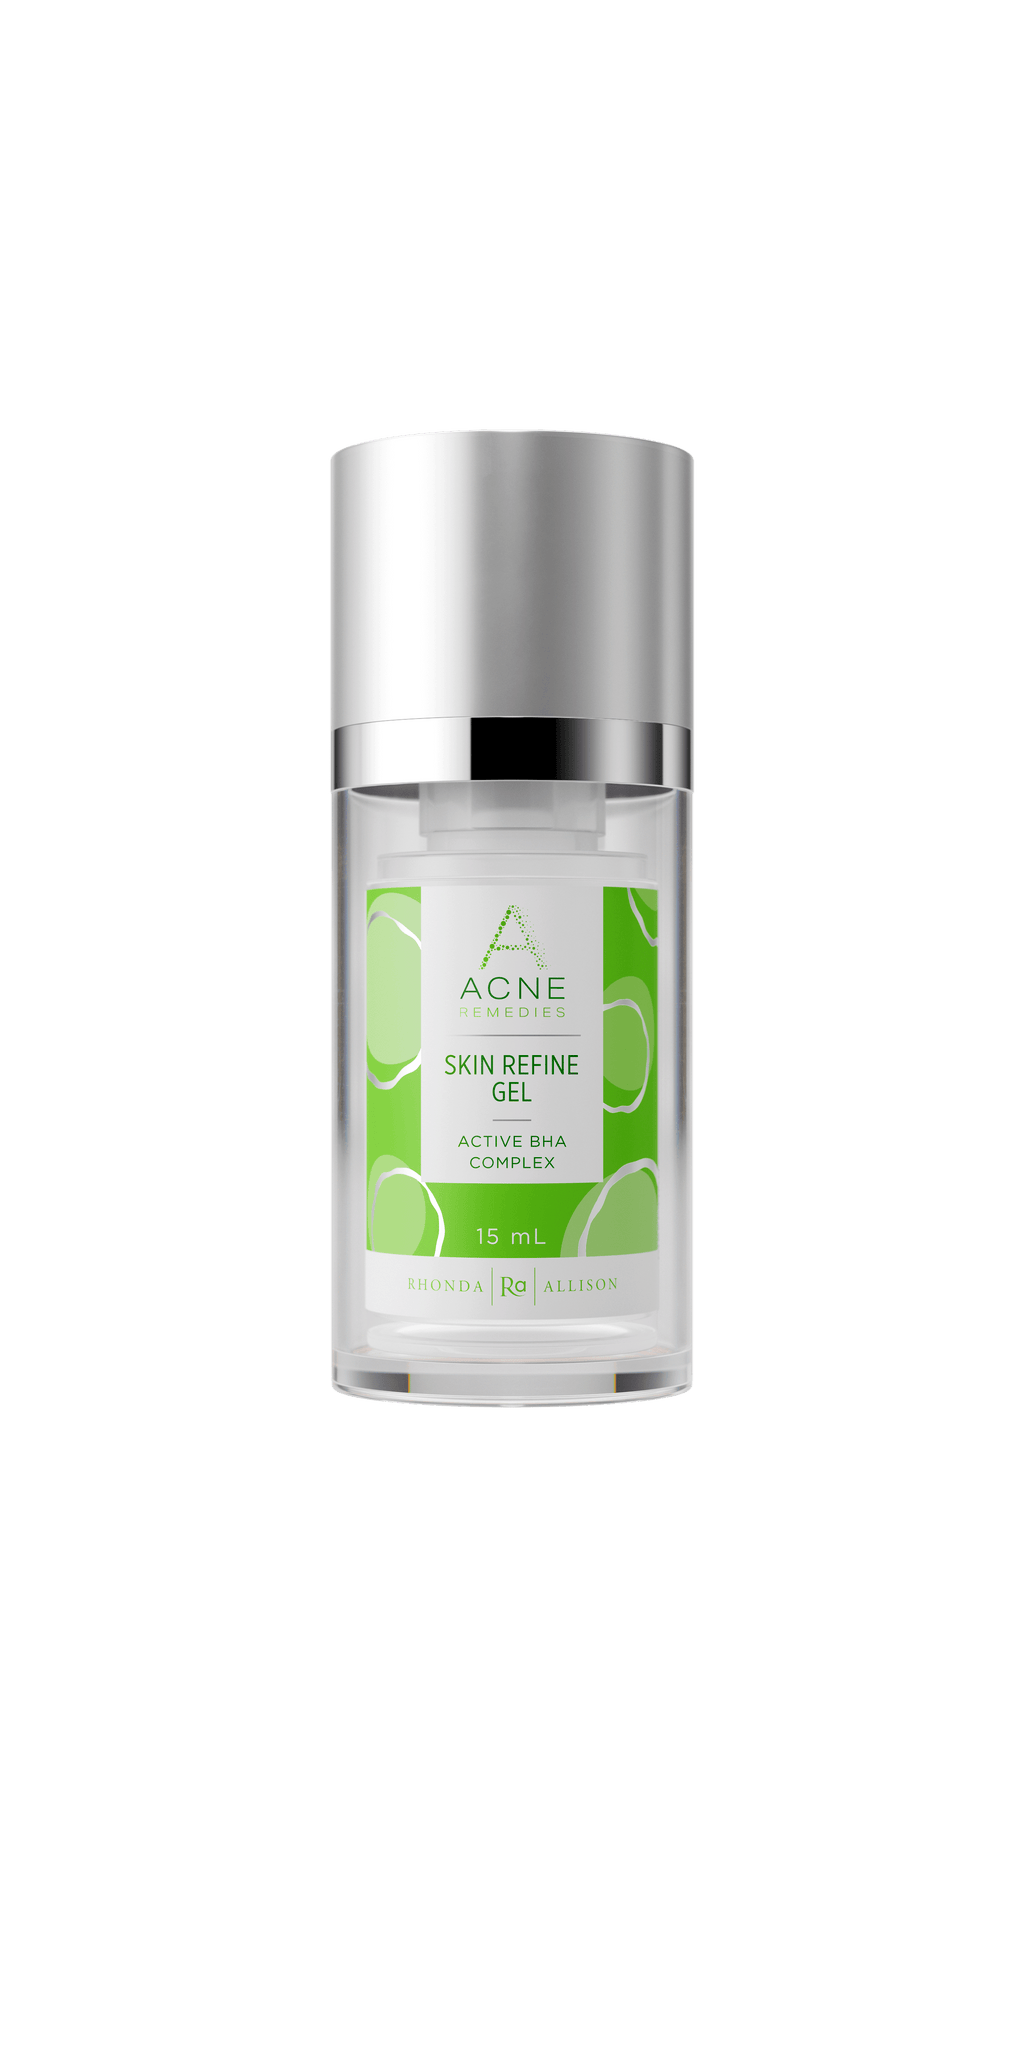 Skin Refine Gel in a bottle